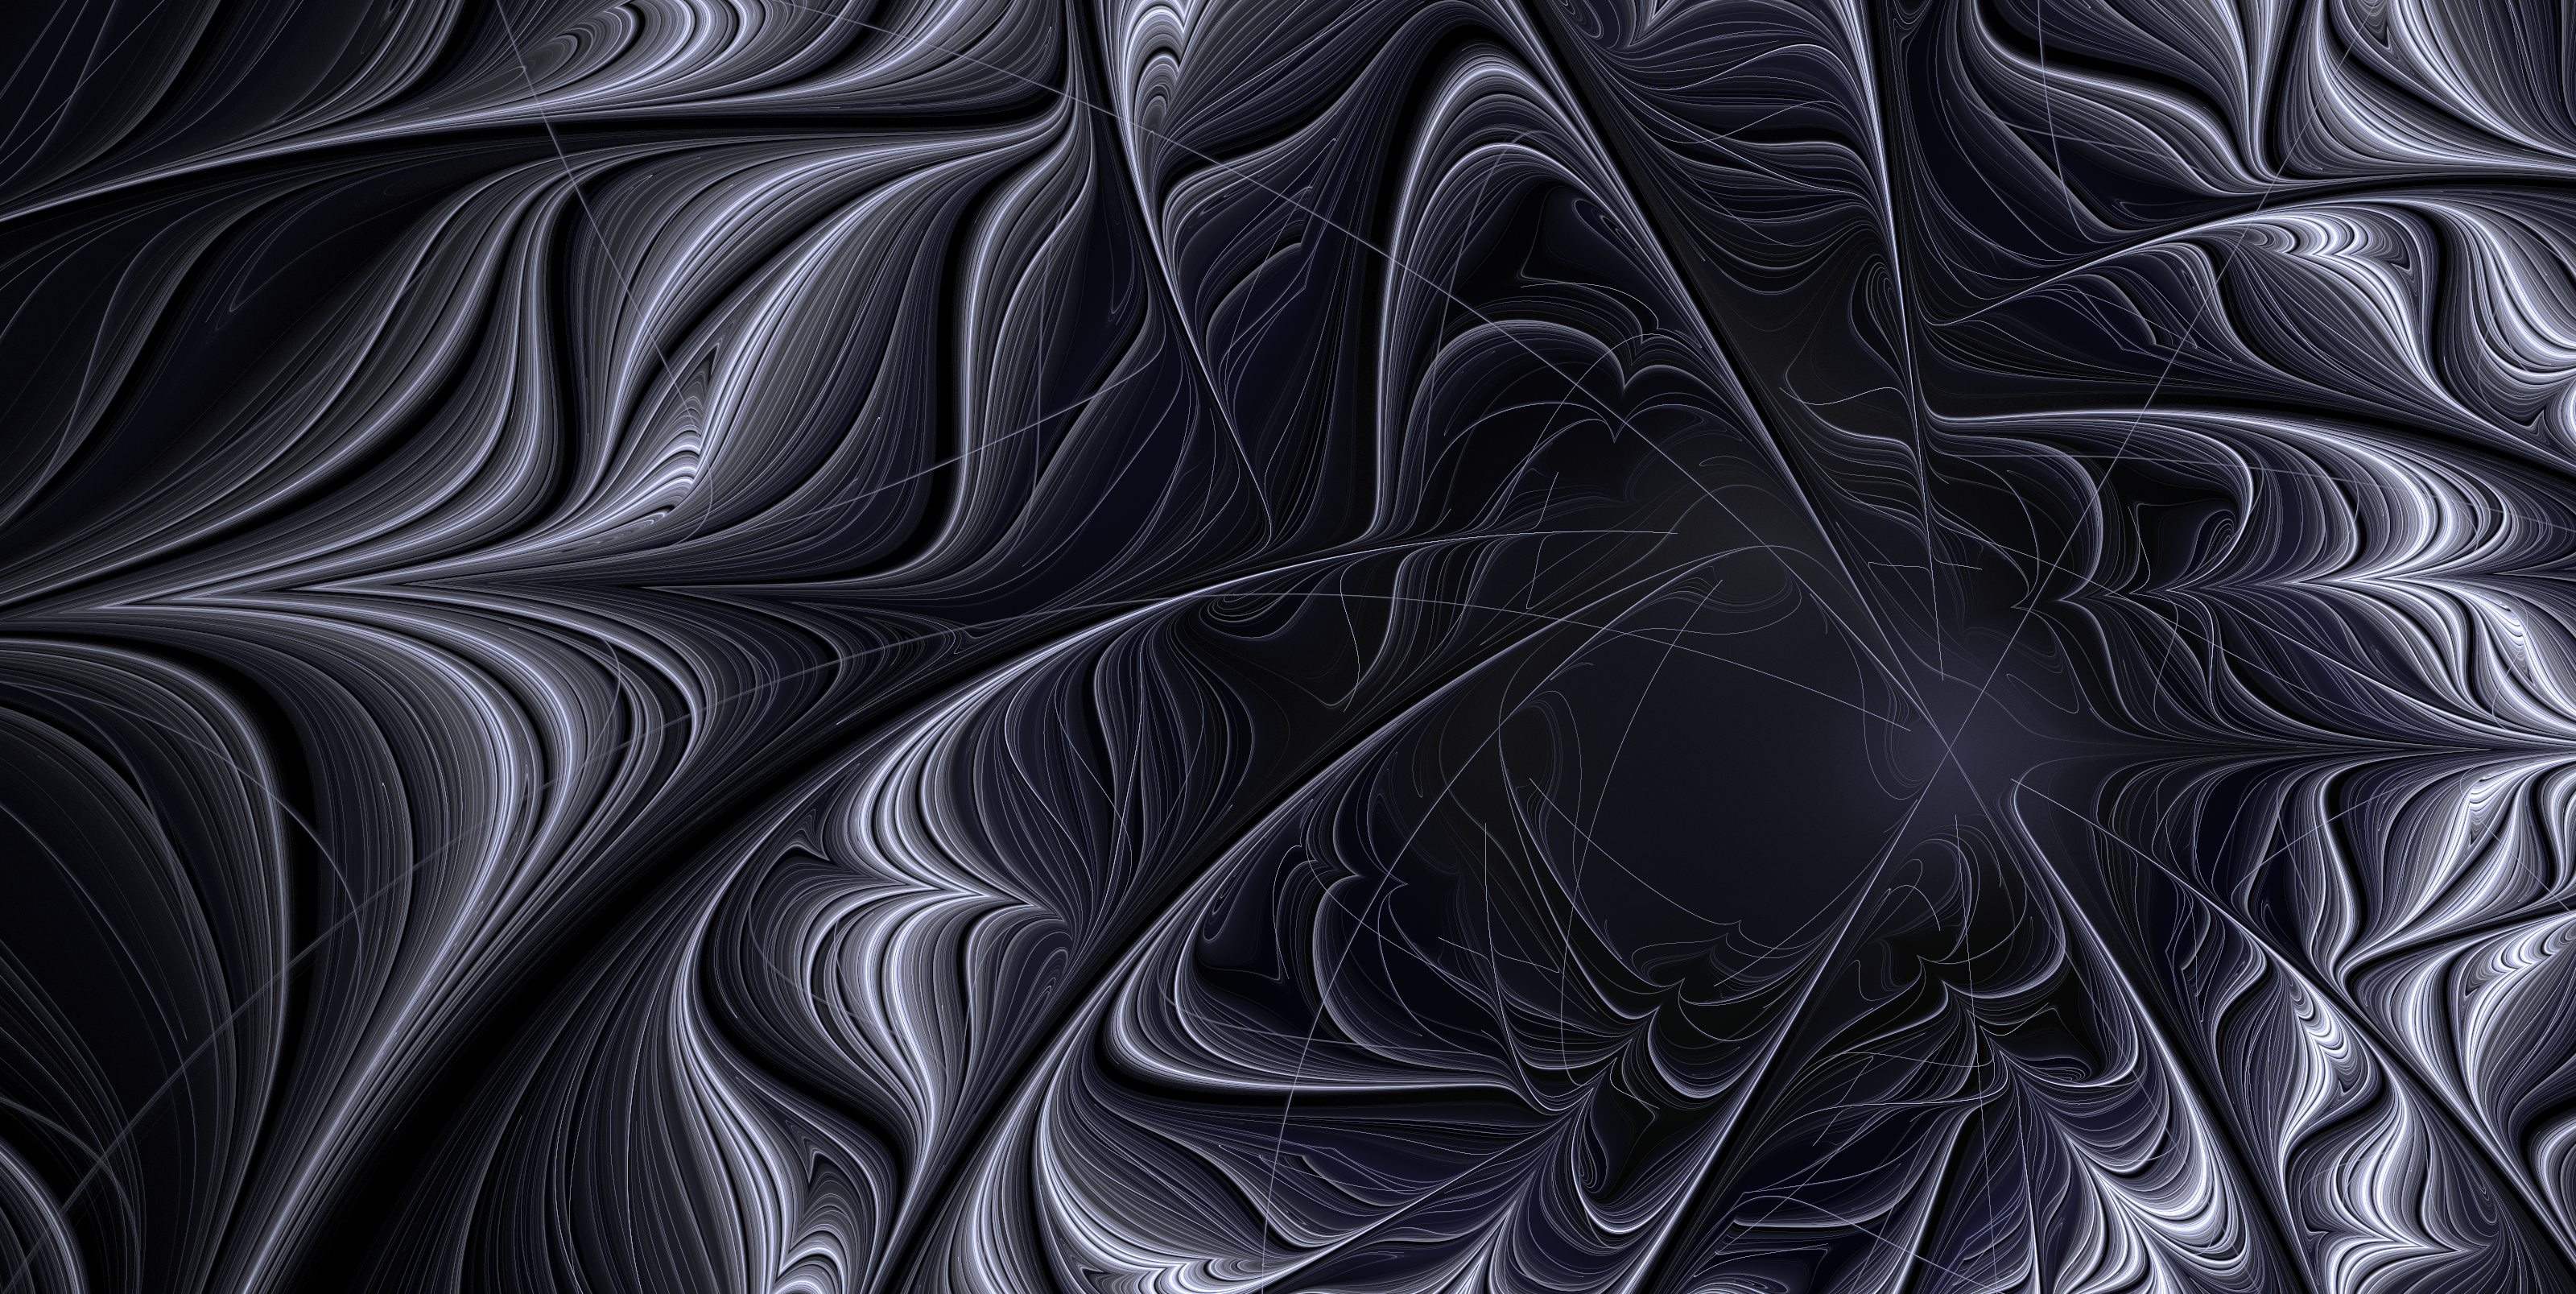 http://fc08.deviantart.net/fs70/f/2011/345/3/4/string_theory___fractal_art_by_ikill_animation-d4ivcvt.png